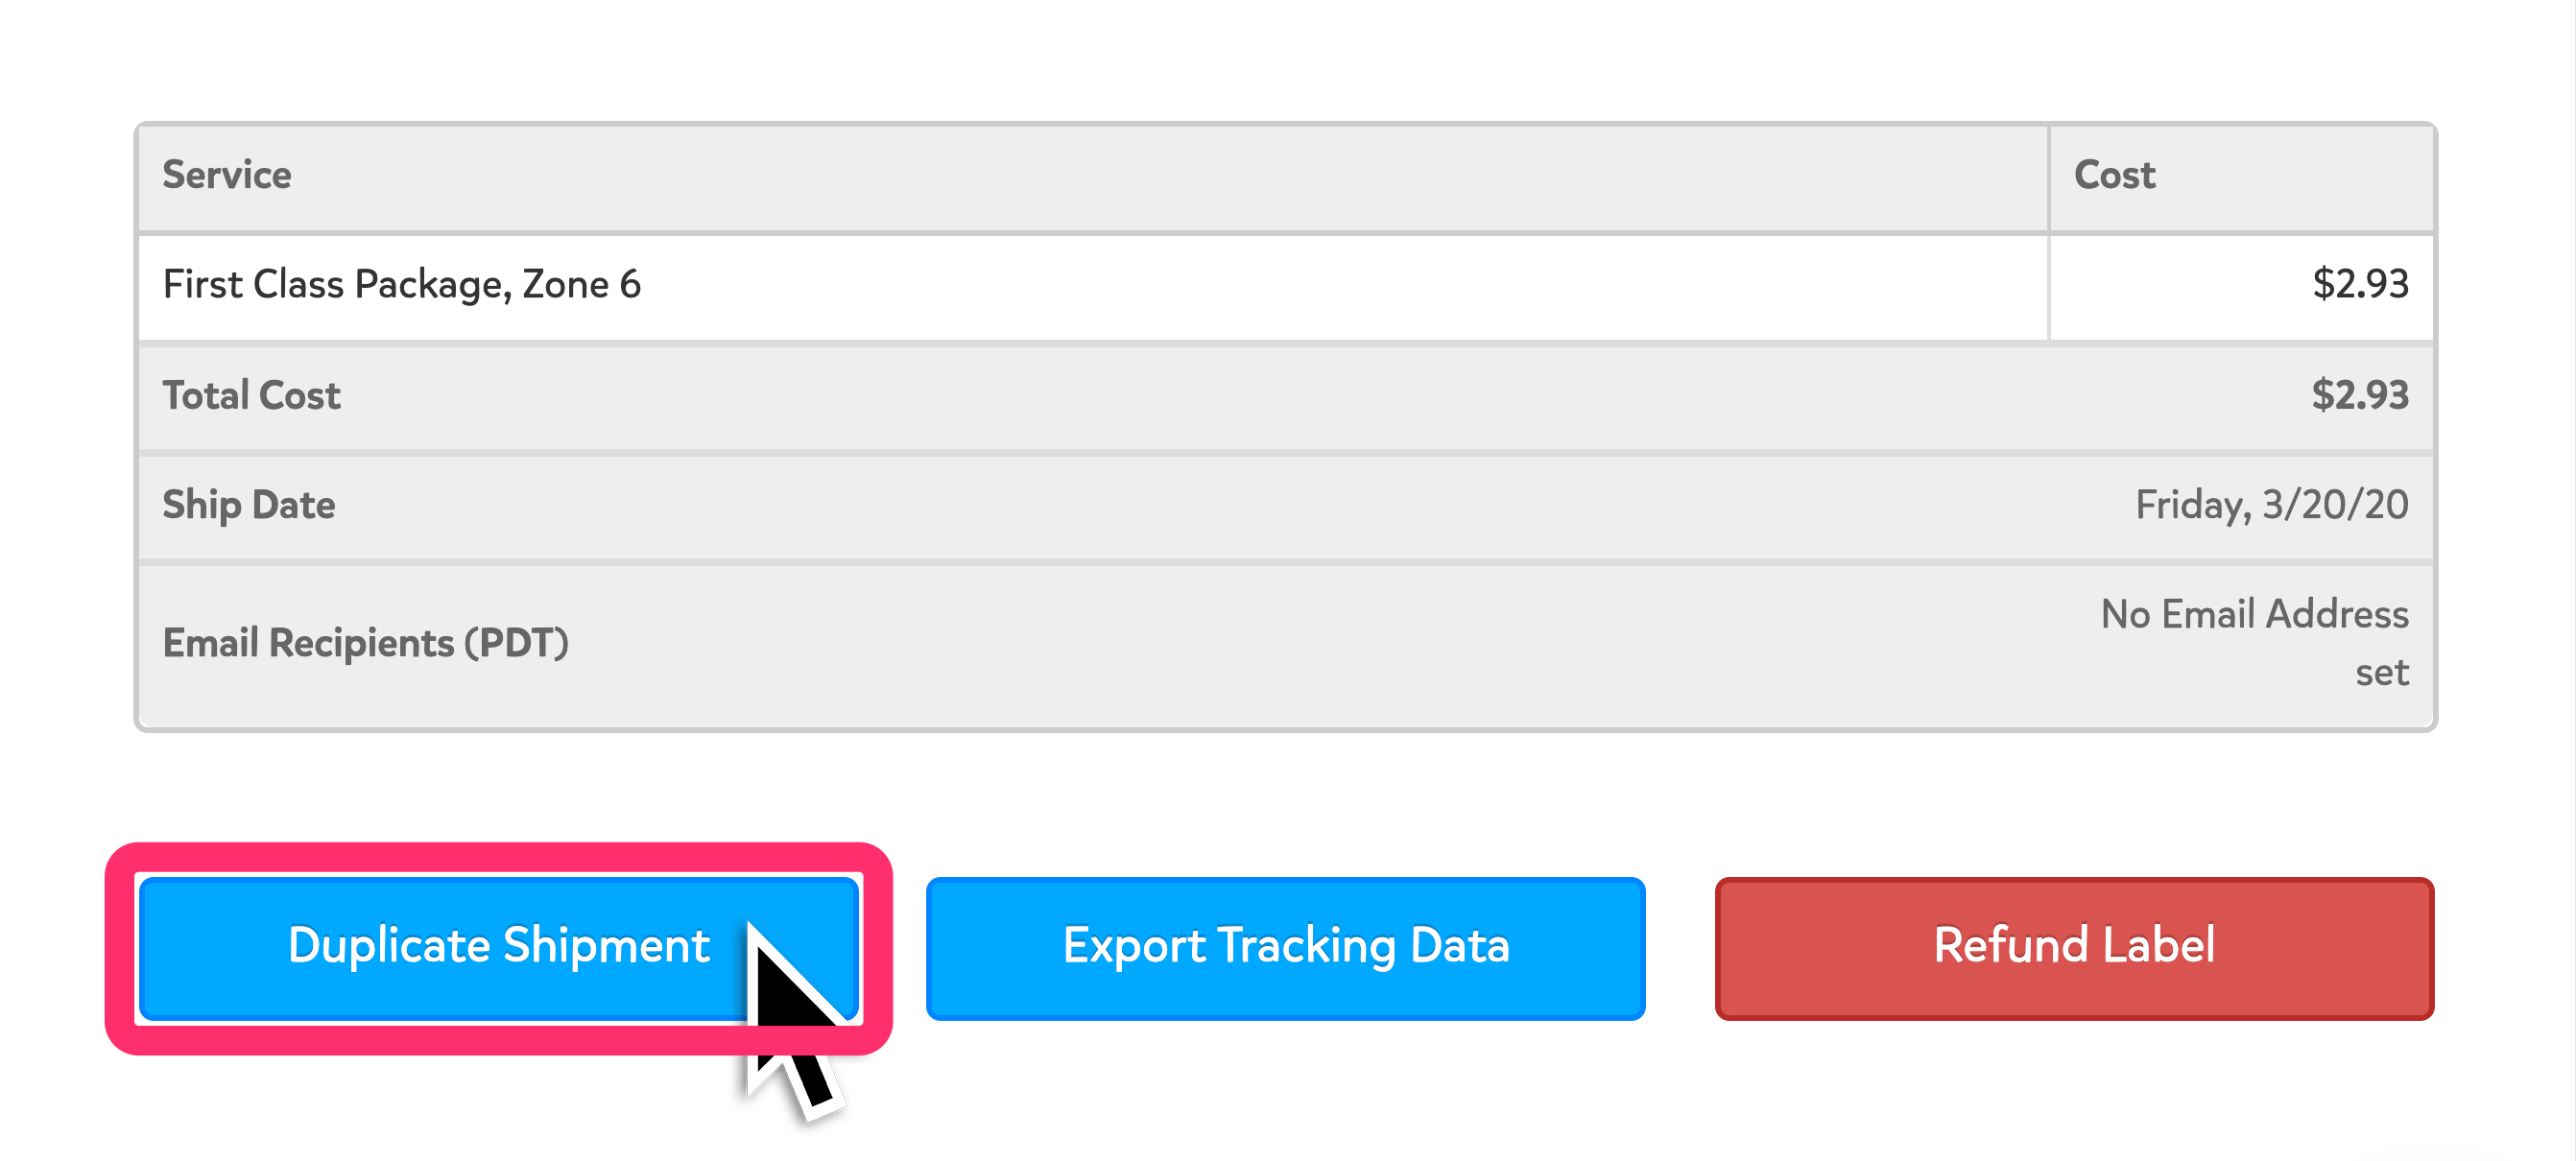 A screenshot of the bottom of the Shipment Details page. The blue 'Duplicate Shipment' button is highlighted in the bottom left corner.